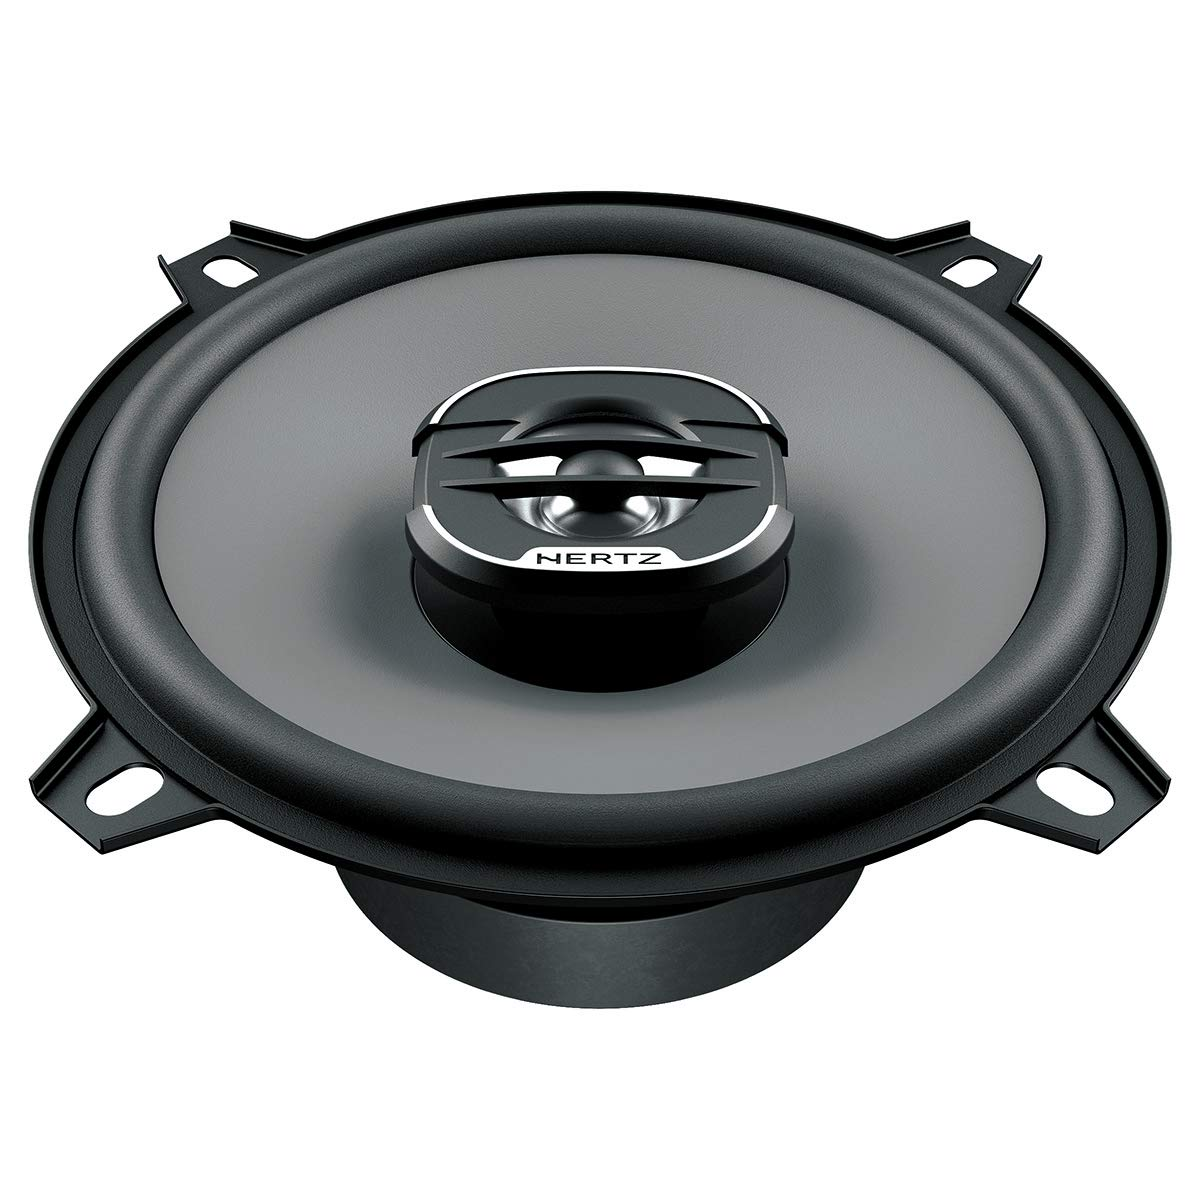 Hertz K130 5.25 55W RMS 2-Way Uno Component Speakers System